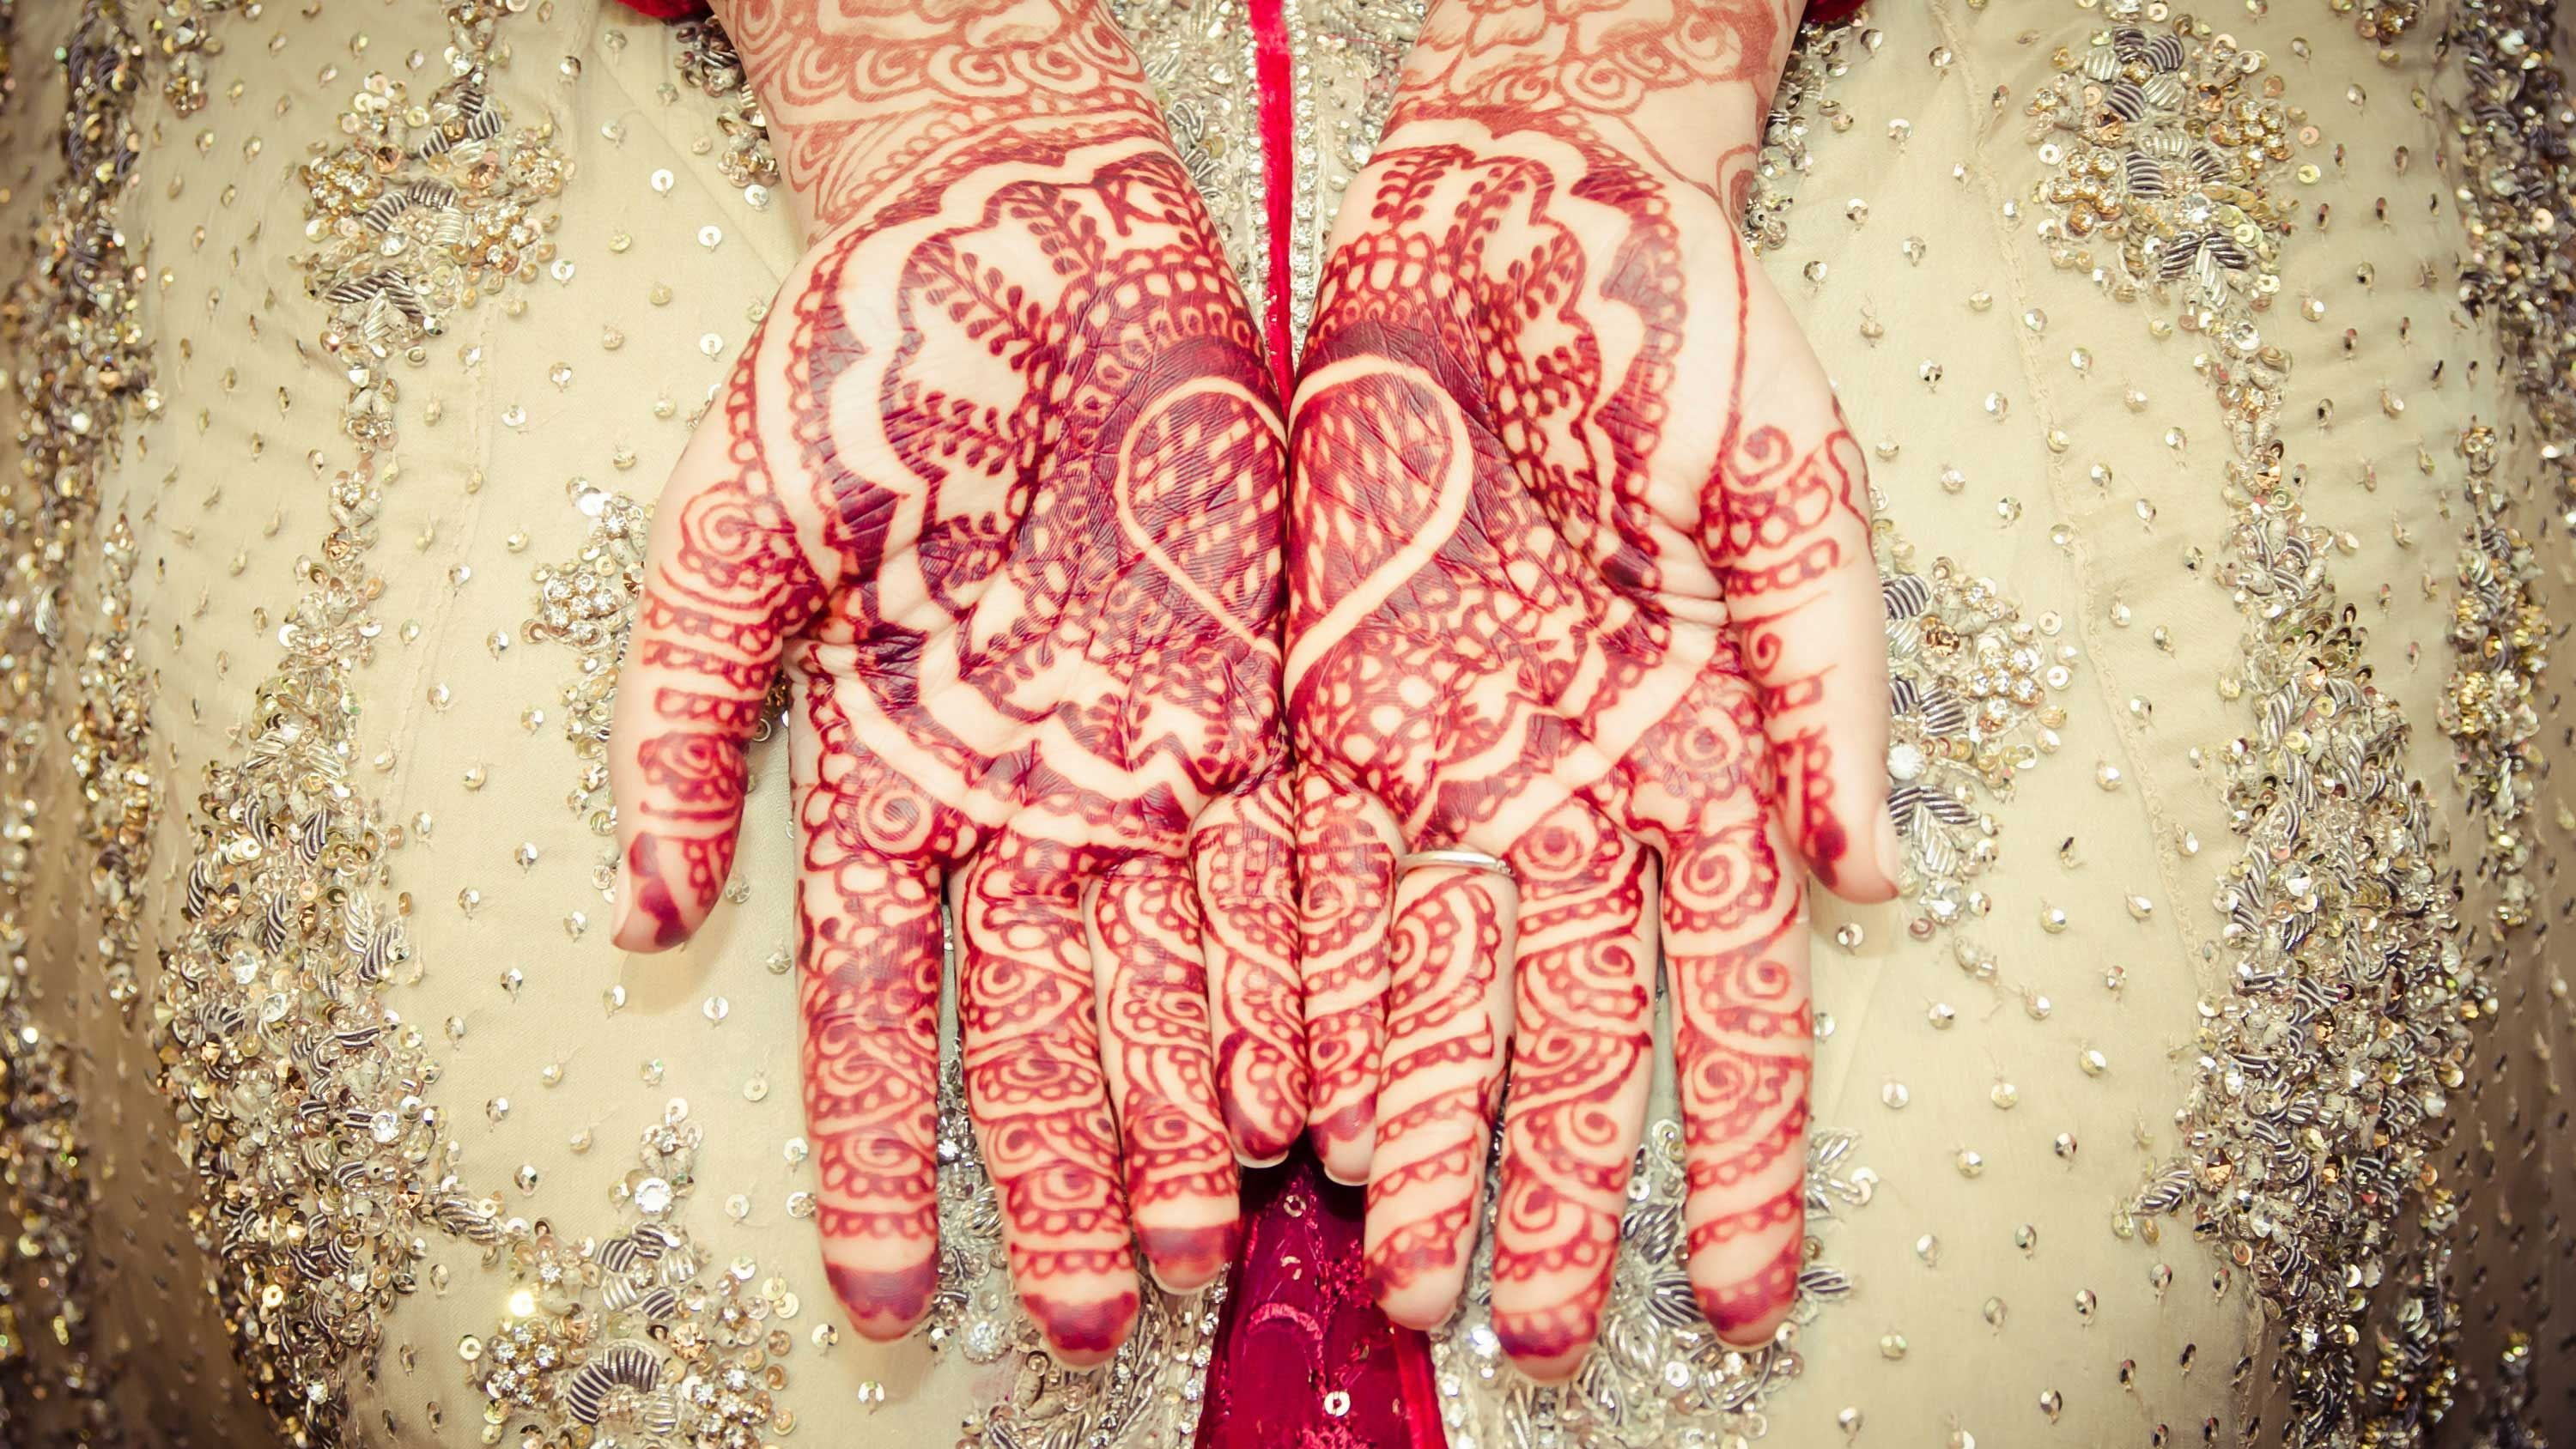 Mehndi Ceremony Background Wallpapers : Other wallpaper background images nature wallpapers for my dream